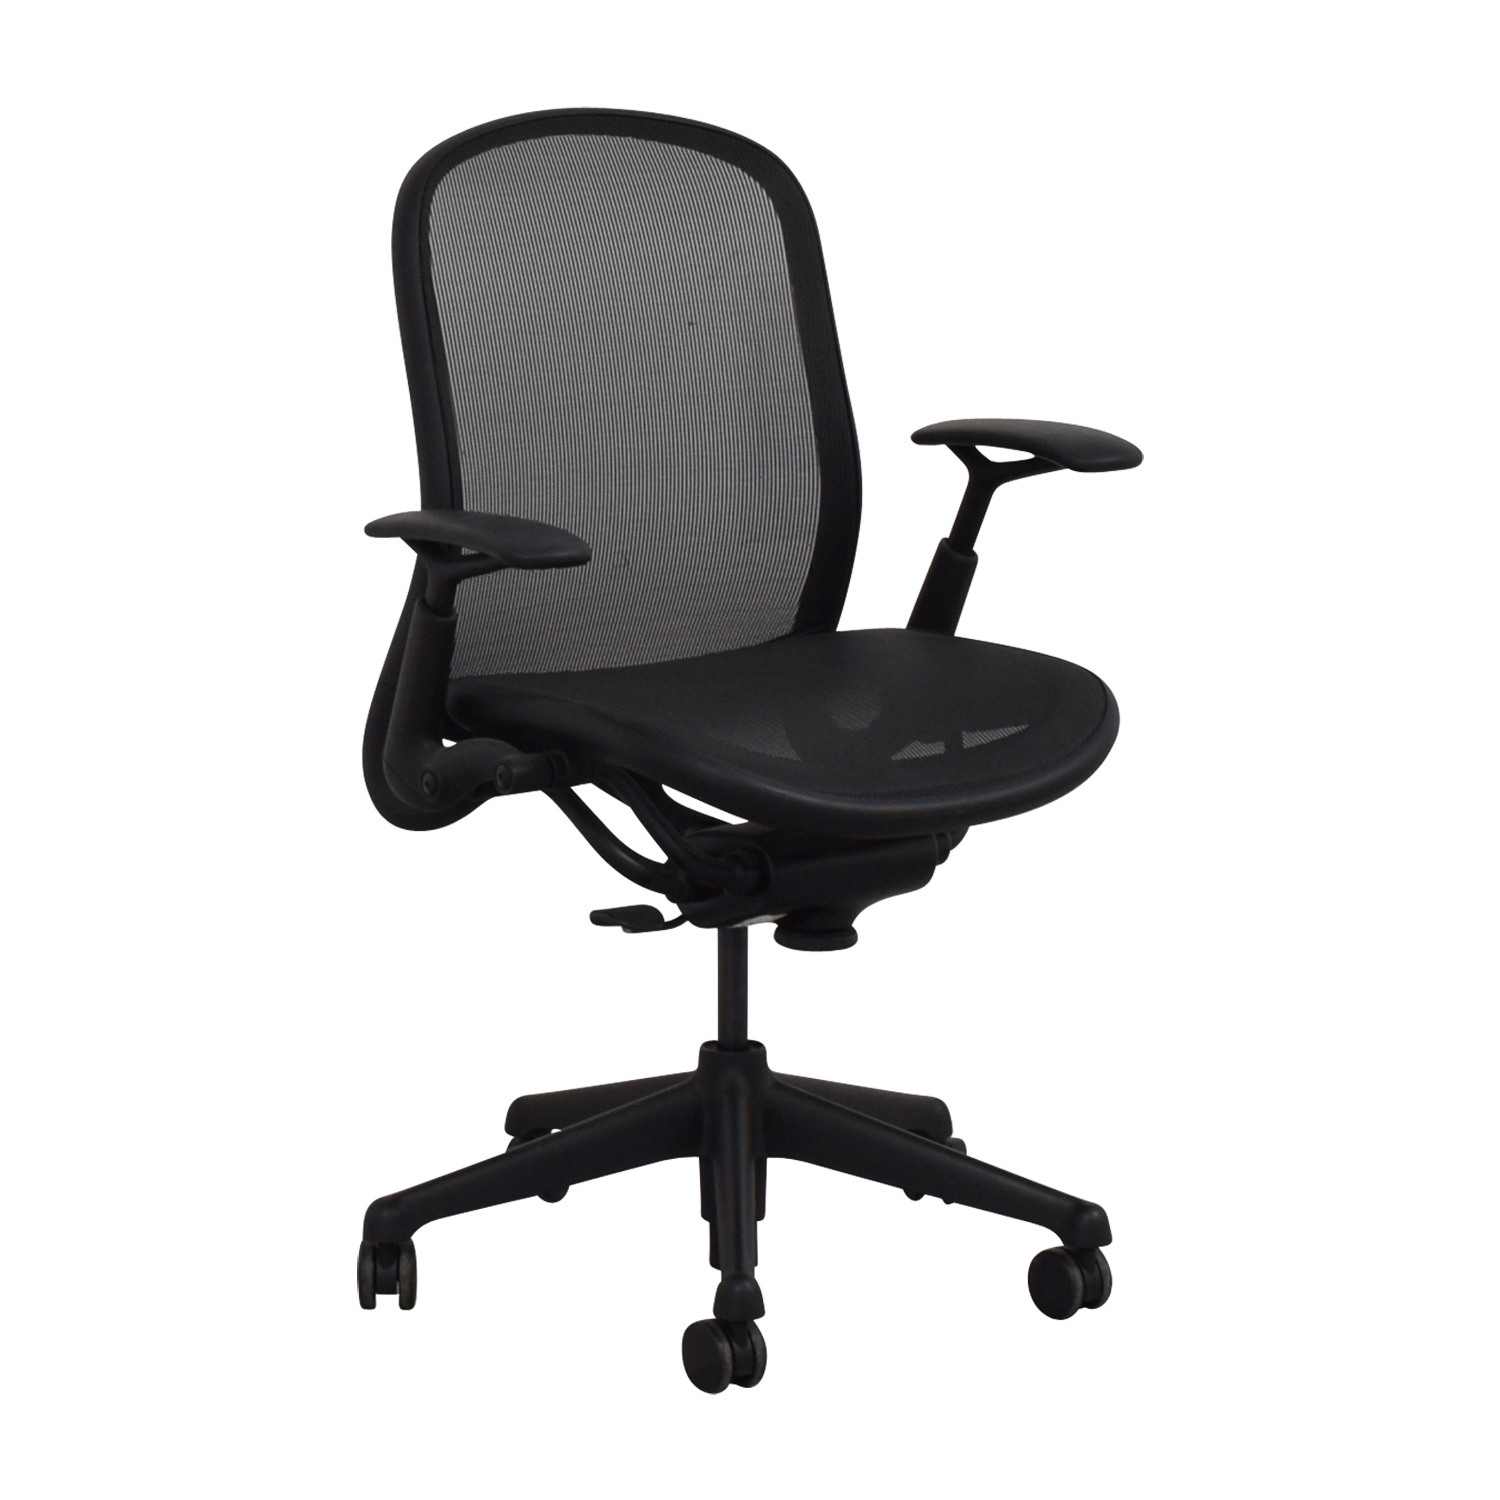 76 OFF  Knoll Knoll Black Rolling Office Chair  Chairs